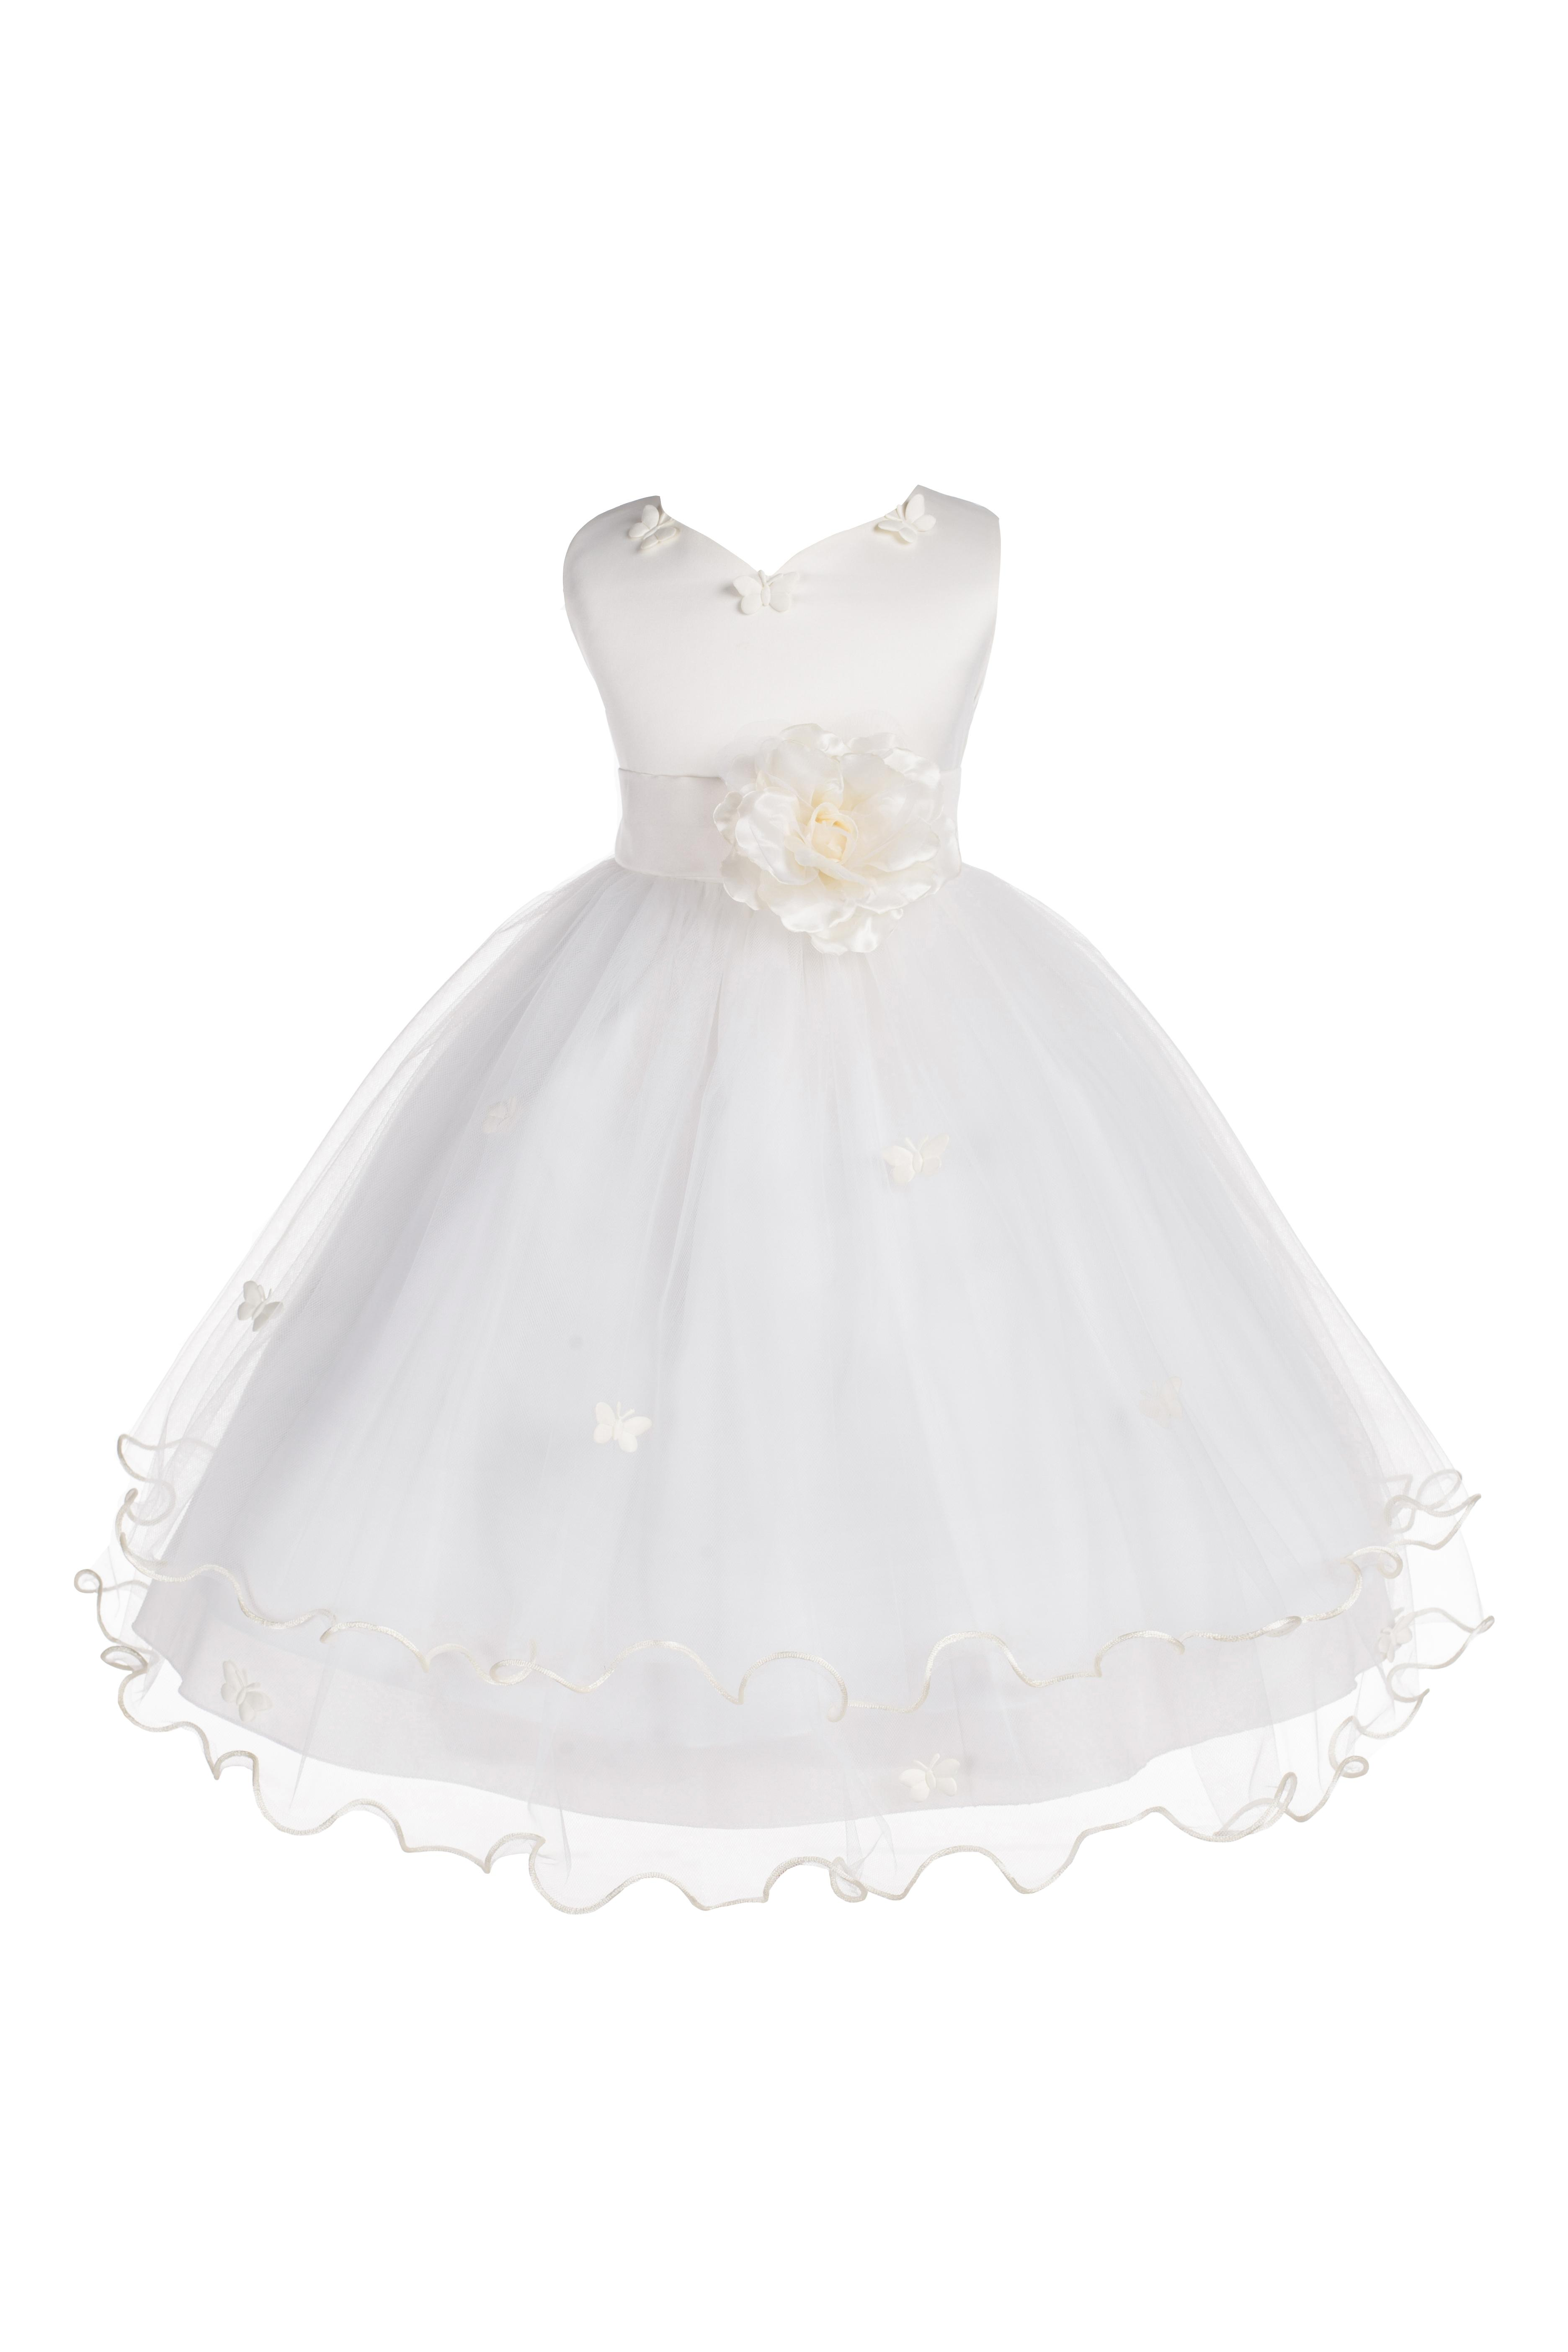 Ekidsbridal Satin Tulle Butterflies Flower Girl Dress Bridesmaid Wedding Pageant Toddler Easter Holiday Communion Birthday Baptism Occasions 801S